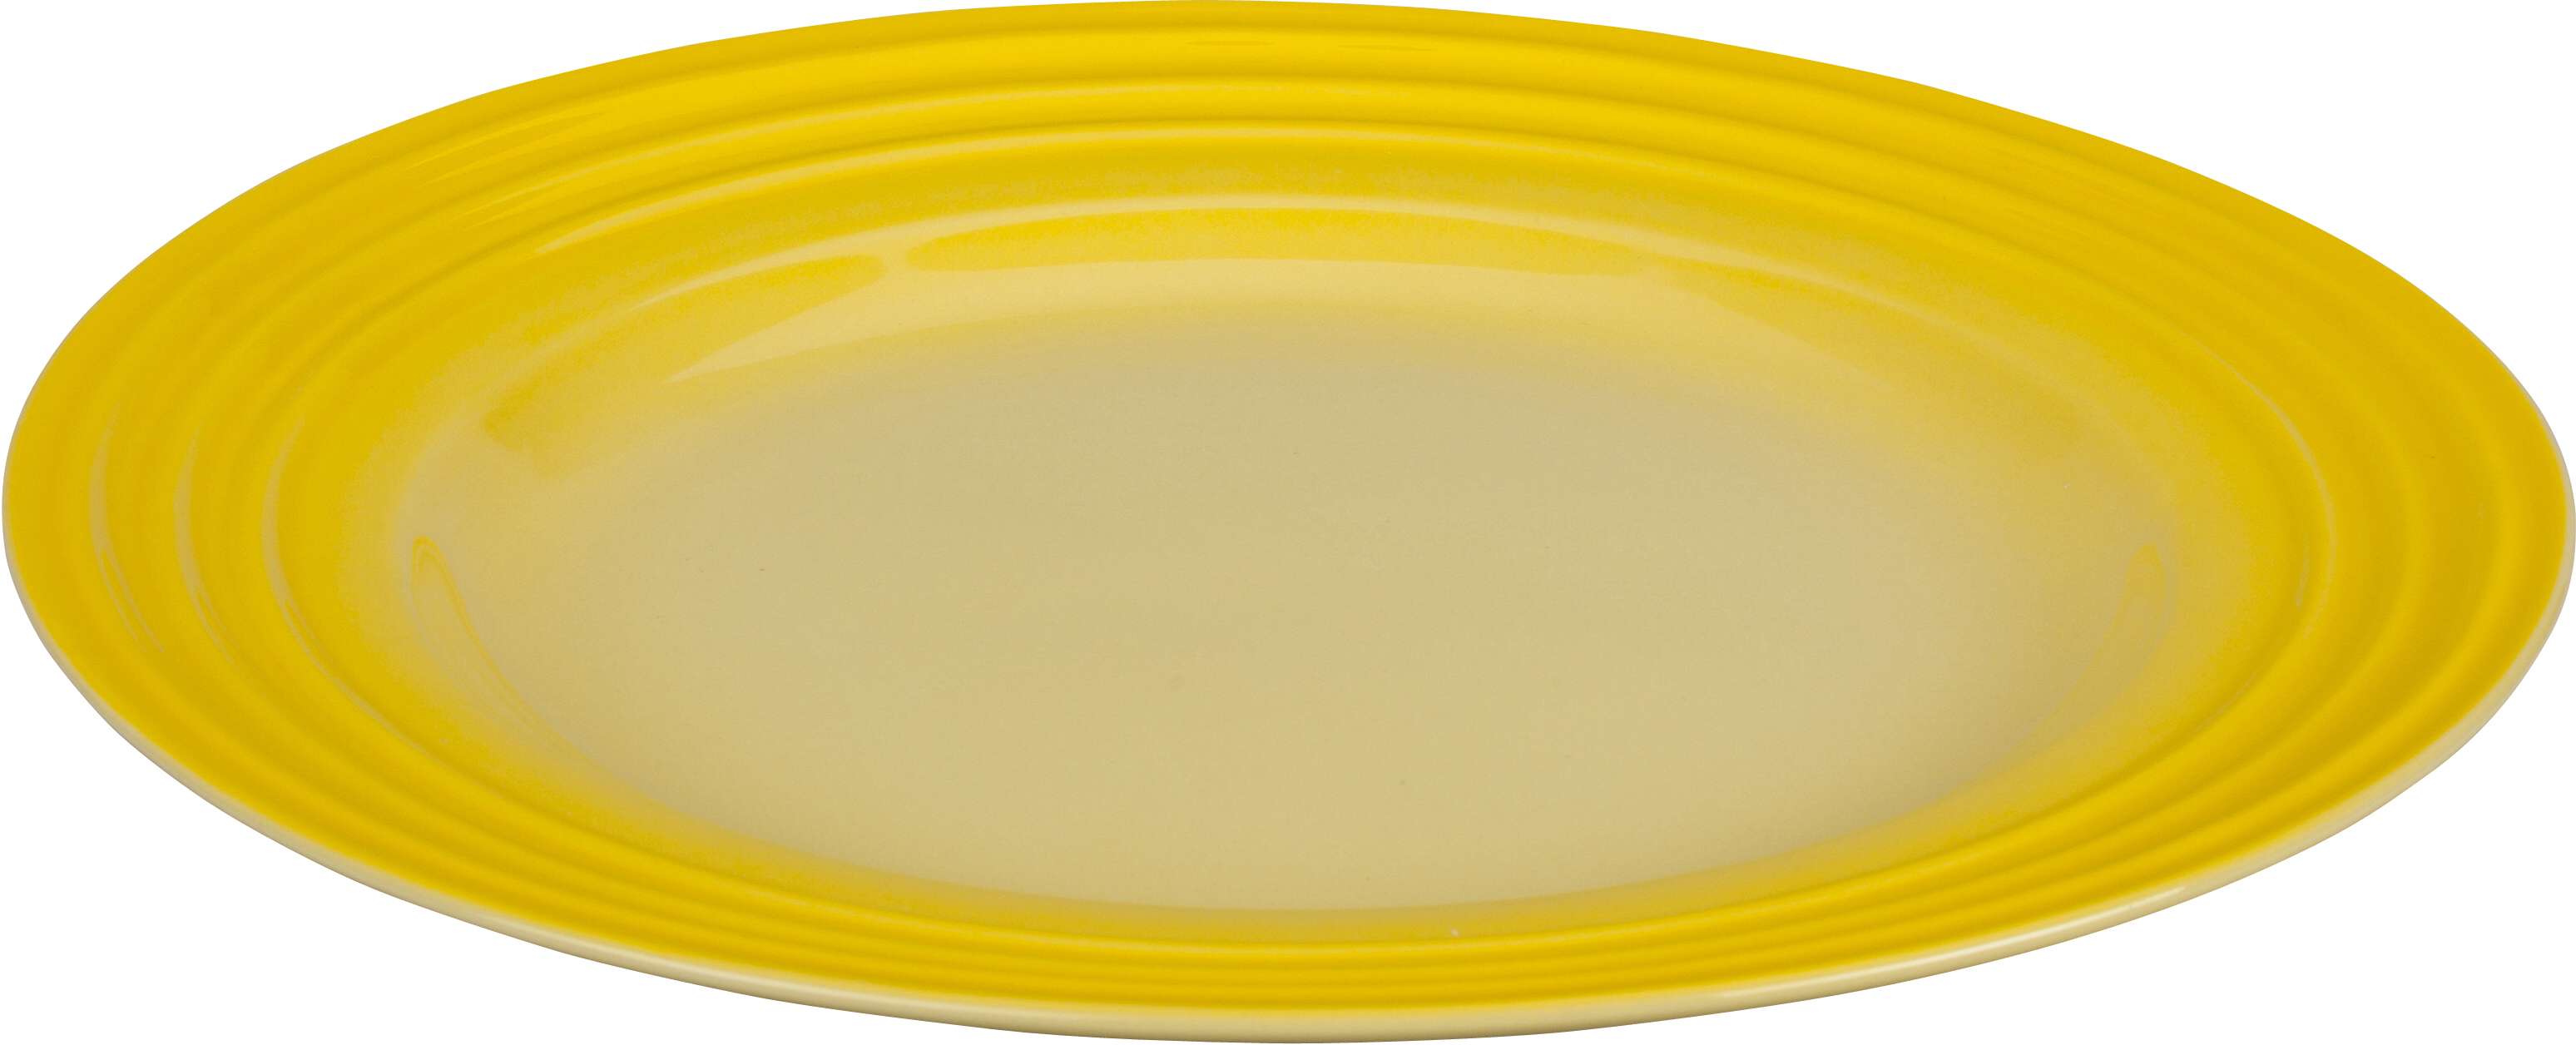 Le Creuset Soleil Yellow Stoneware Dinner Plate, 12 Inch